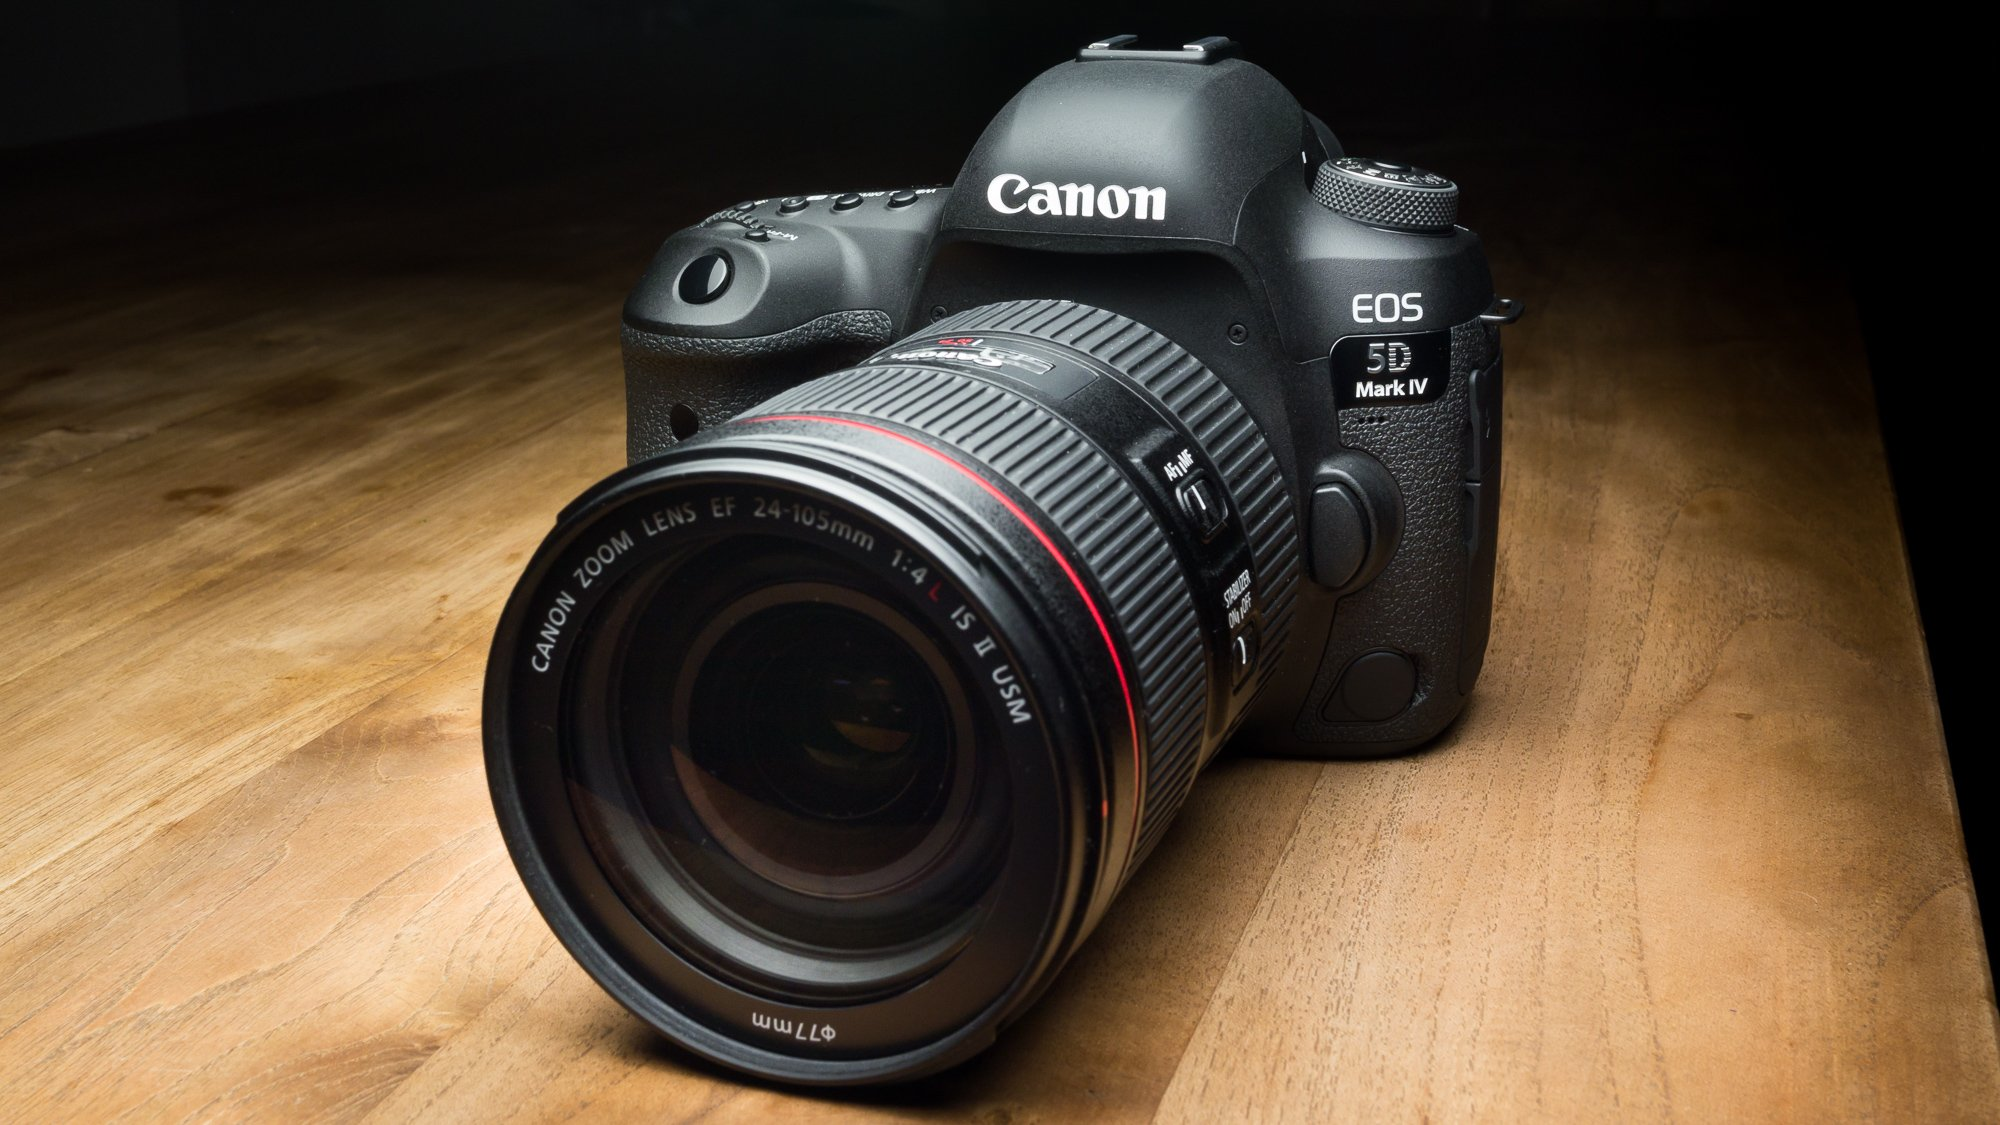 Camera Old Dslr Camera For Sale best camera 2017 the compact csc and dslr cameras expert its not like 5d mark iii was a bad it one of high end dslrs money could buy but as youd hope